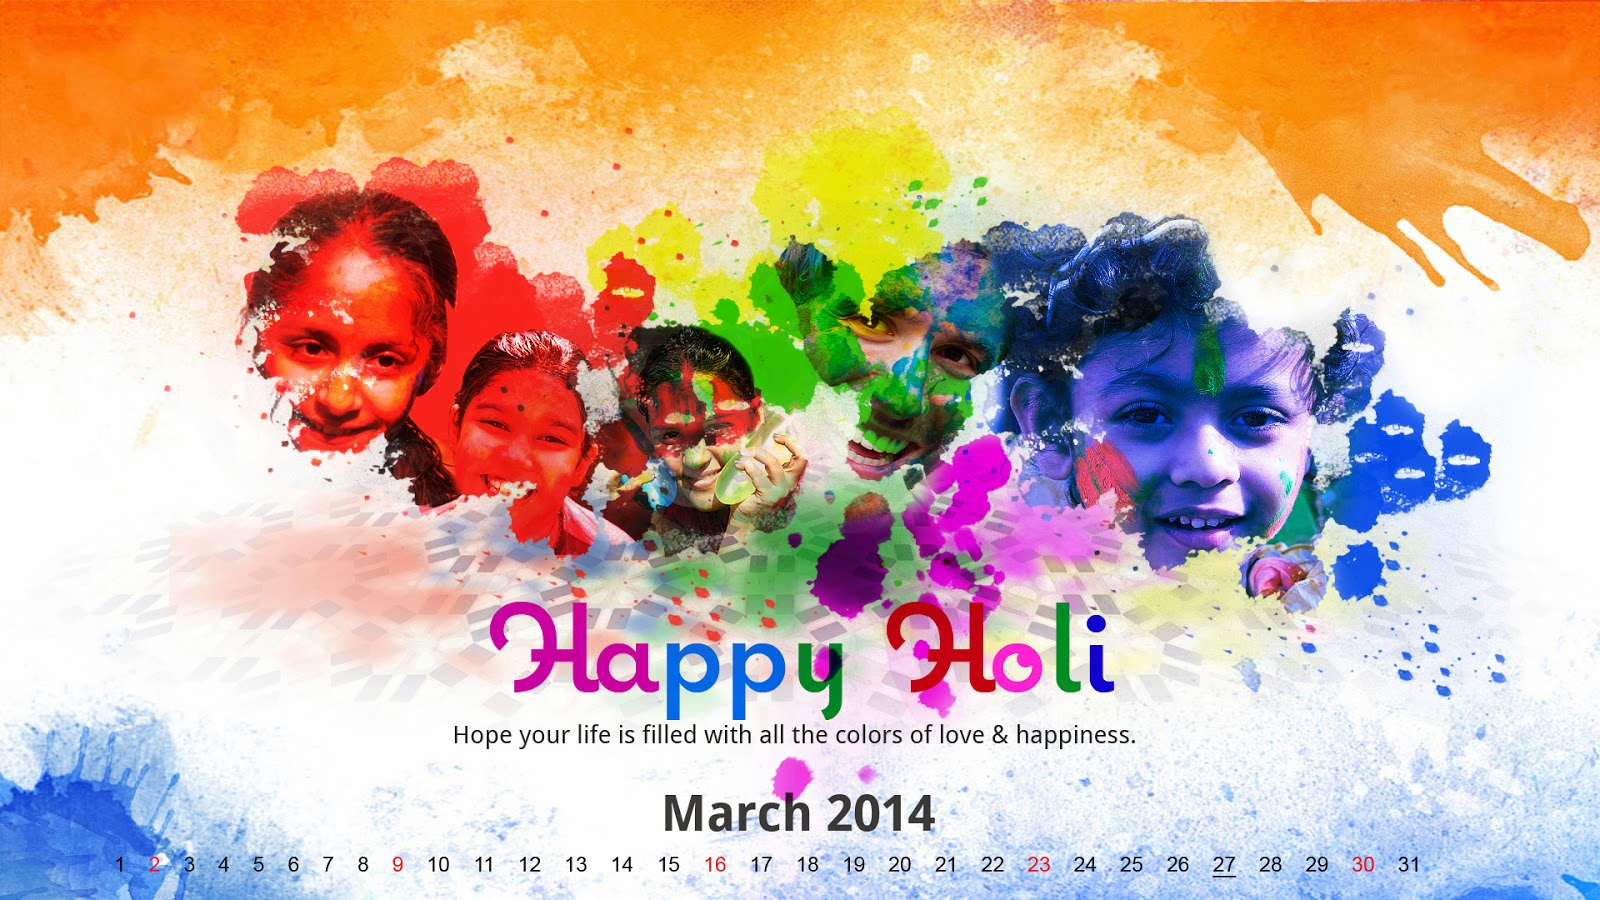 Happy holi 17 march 2014 cover photos